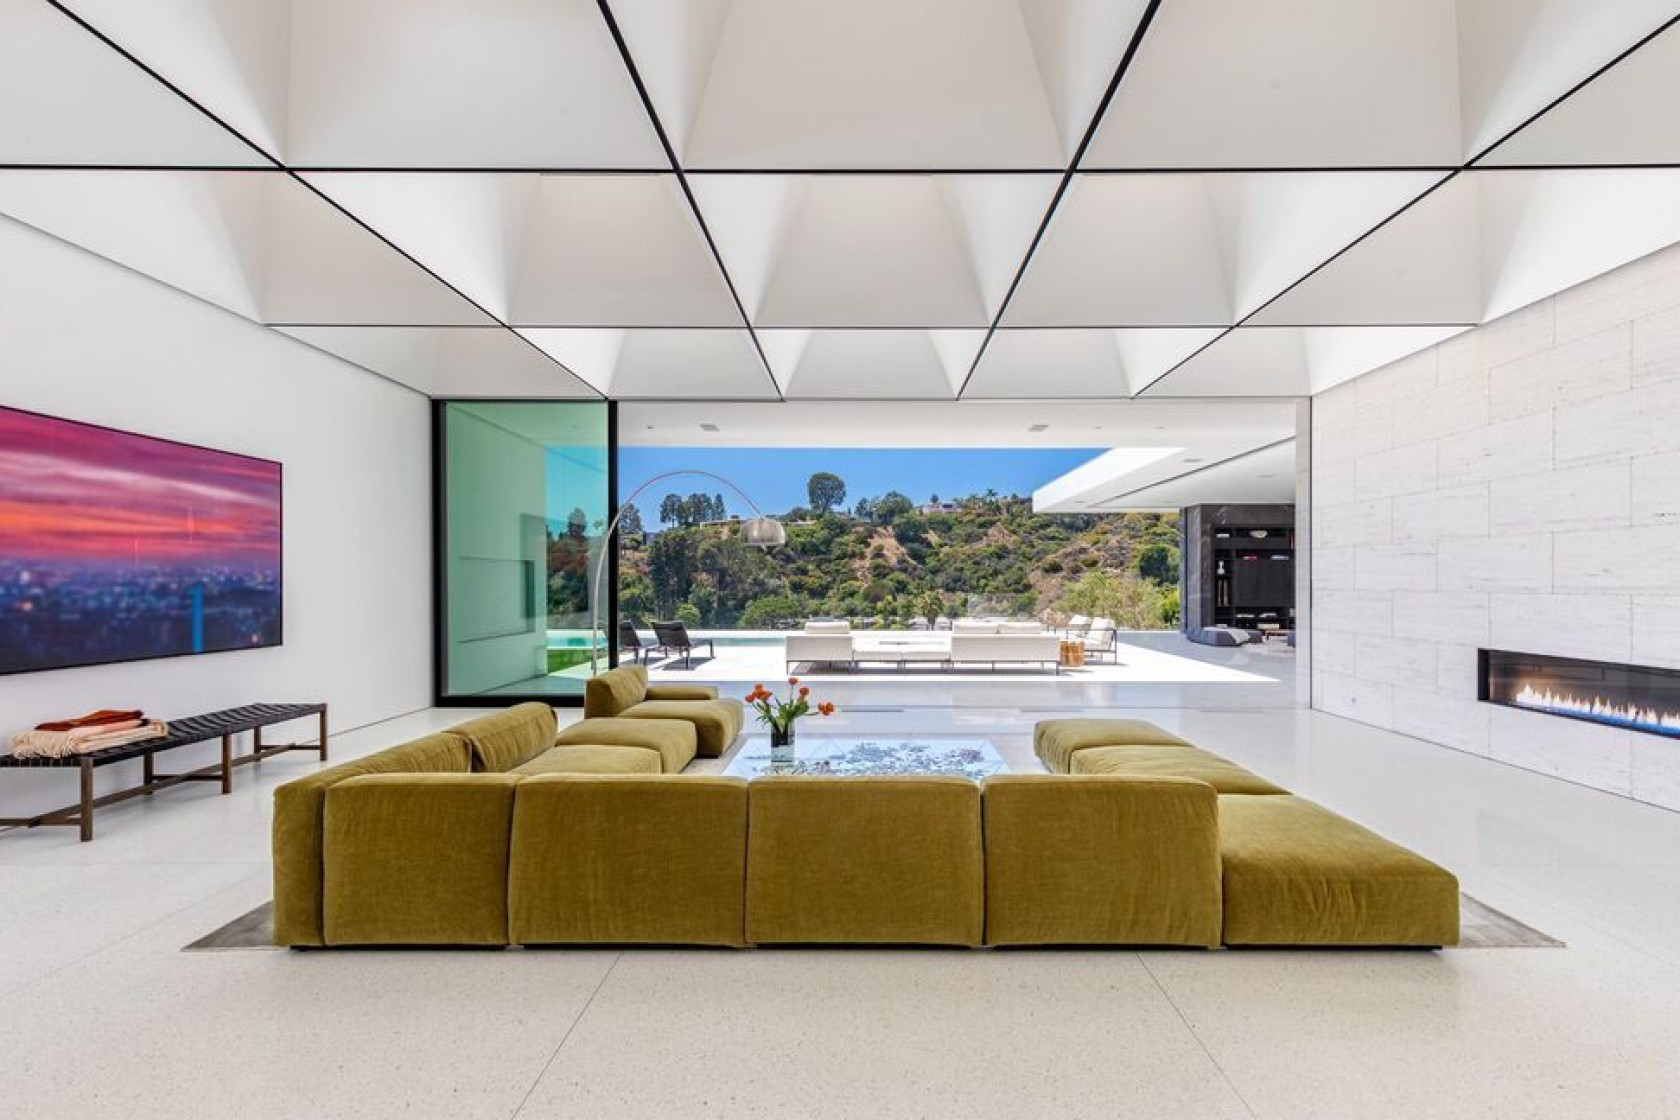 The ceilings in Casey Wasserman's new house cost $1 million alone, it has been reported ©Realtor.com